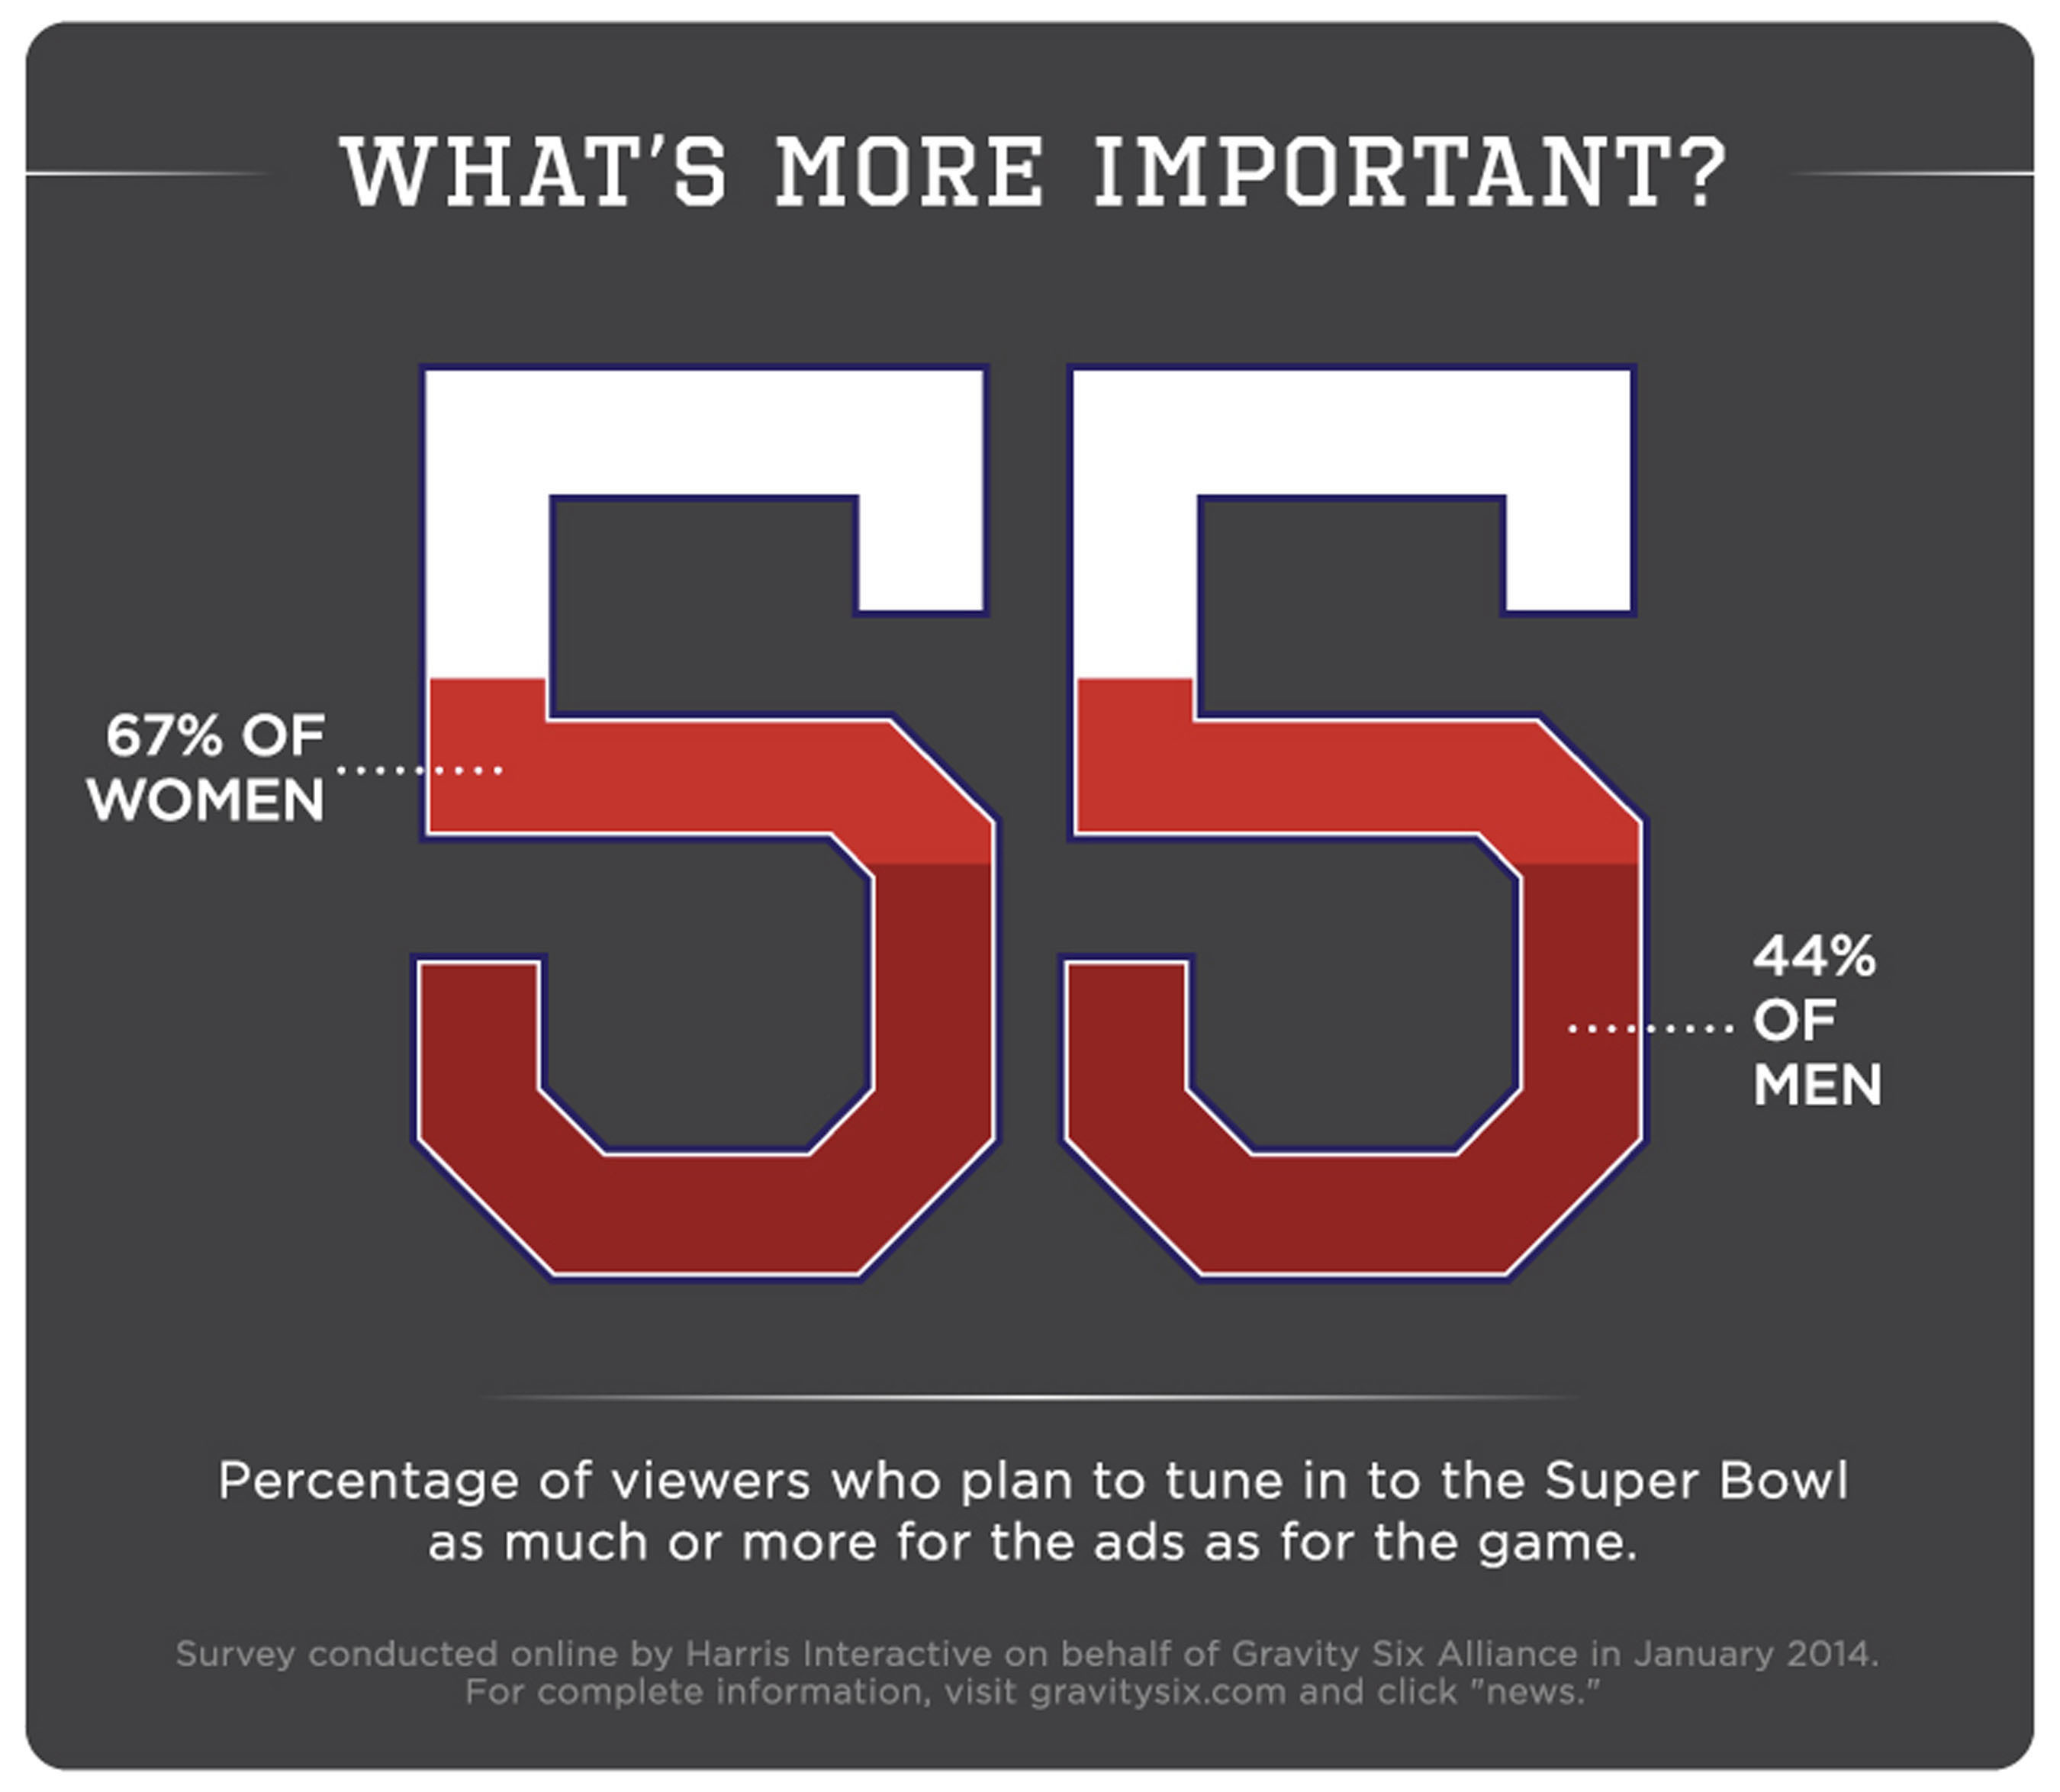 55% of US adults plan to tune in to Super Bowl XLVIII as much or more for the ads as for the game, according to a Gravity Six Alliance poll conducted by Harris Interactive.  (PRNewsFoto/Gravity Six Alliance)